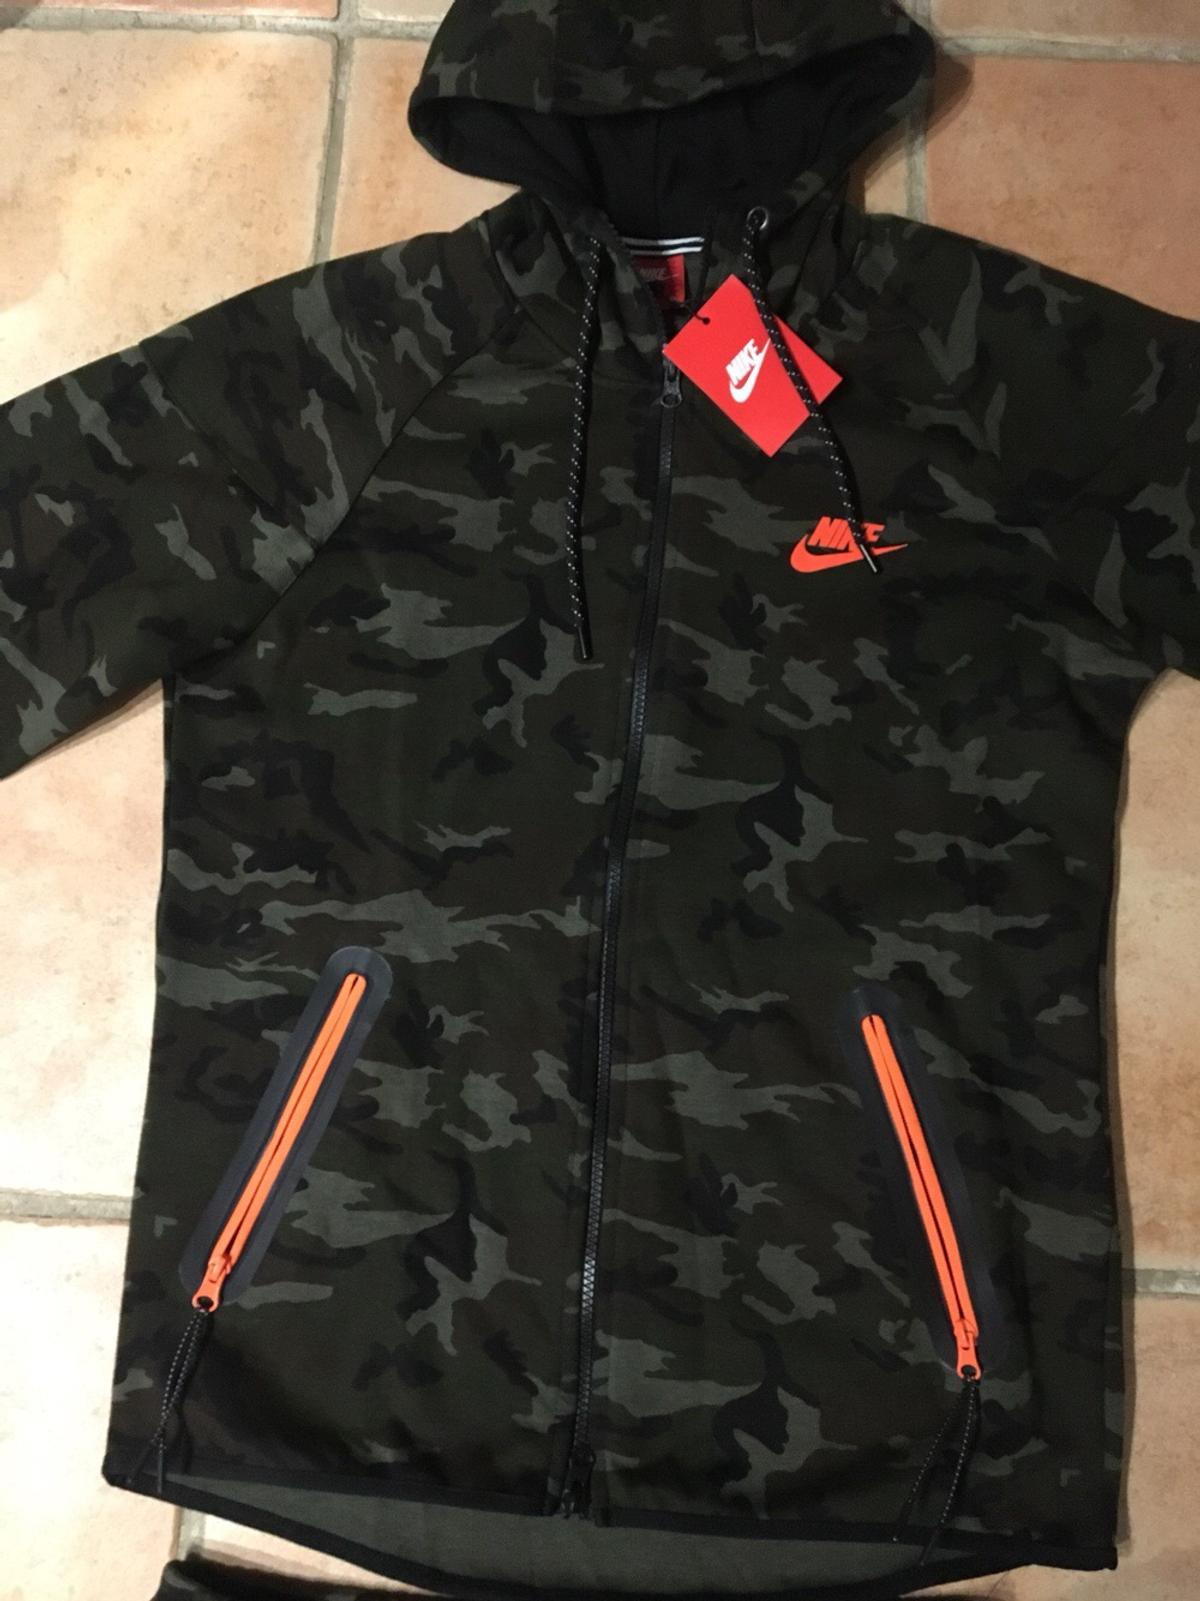 top design in stock classic styles Nike Trainingsanzug Camo Camouflage XL